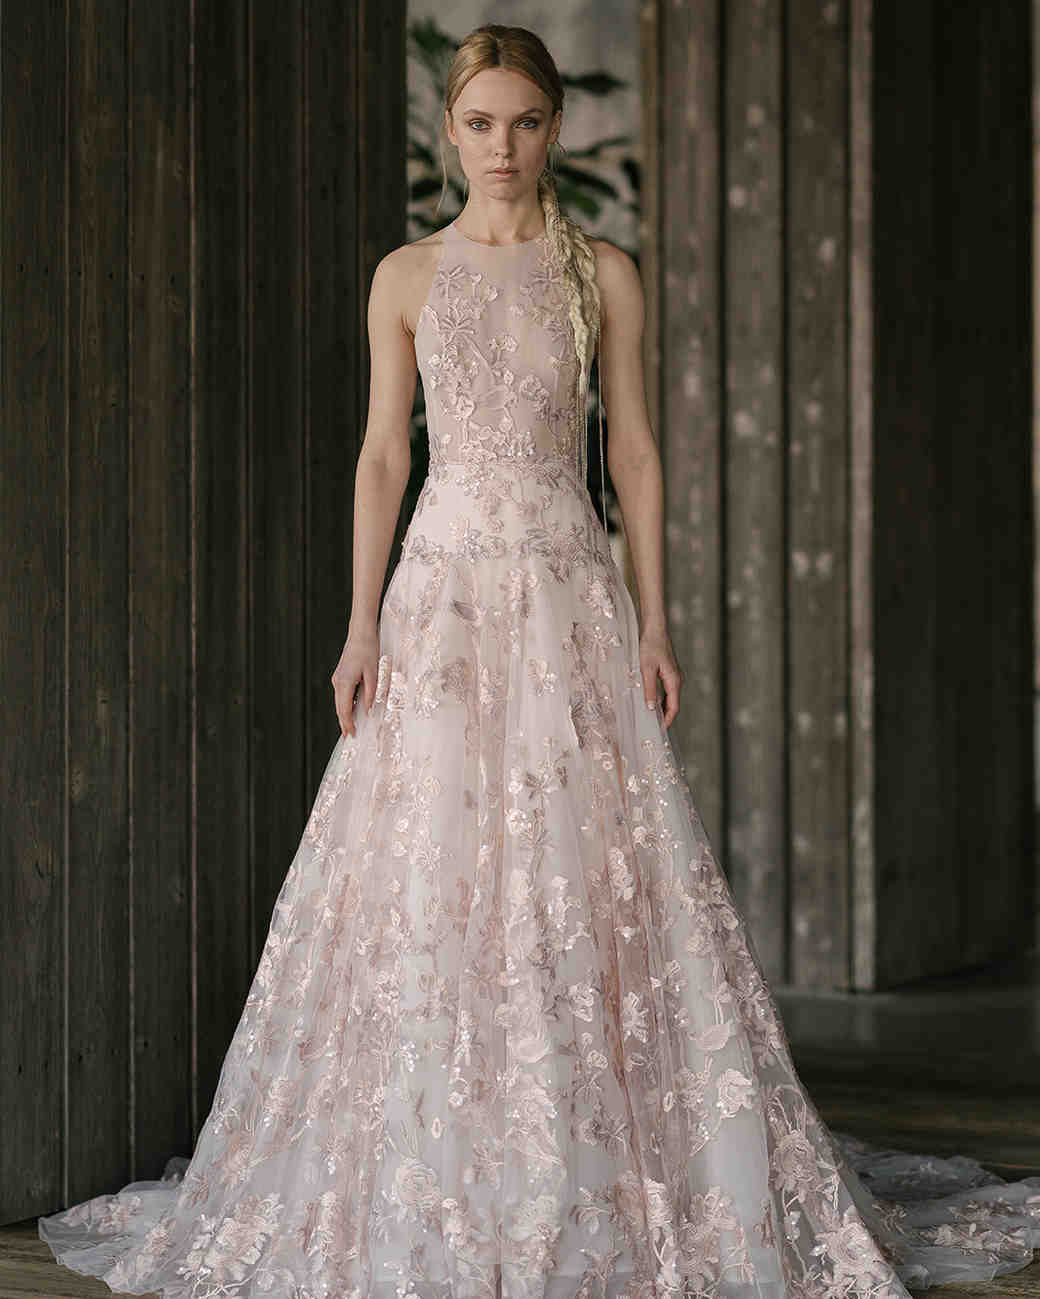 rivini by rita vinieris spring 2019 pink wedding dress with floral appliqués